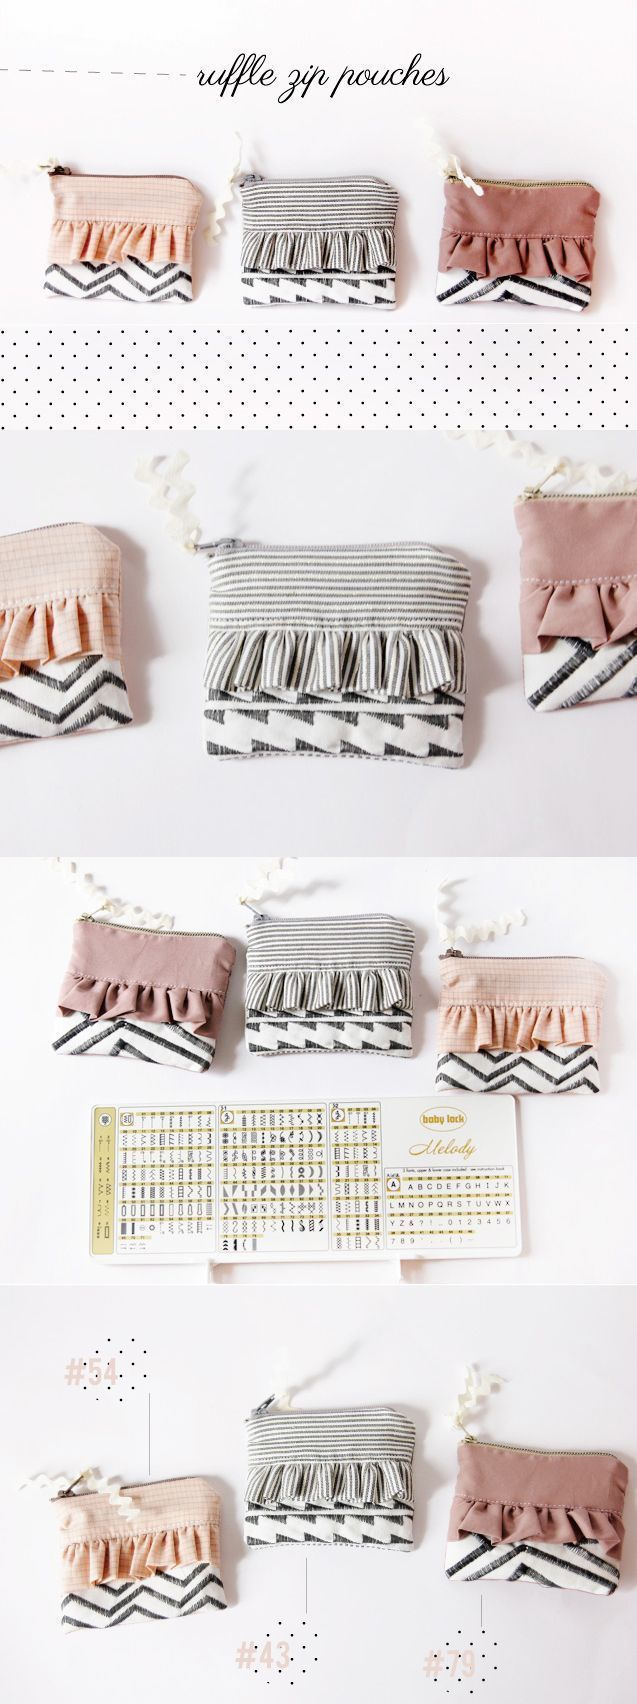 Ruffle Zip Pouches with decorative stitching – #with #Pouches …